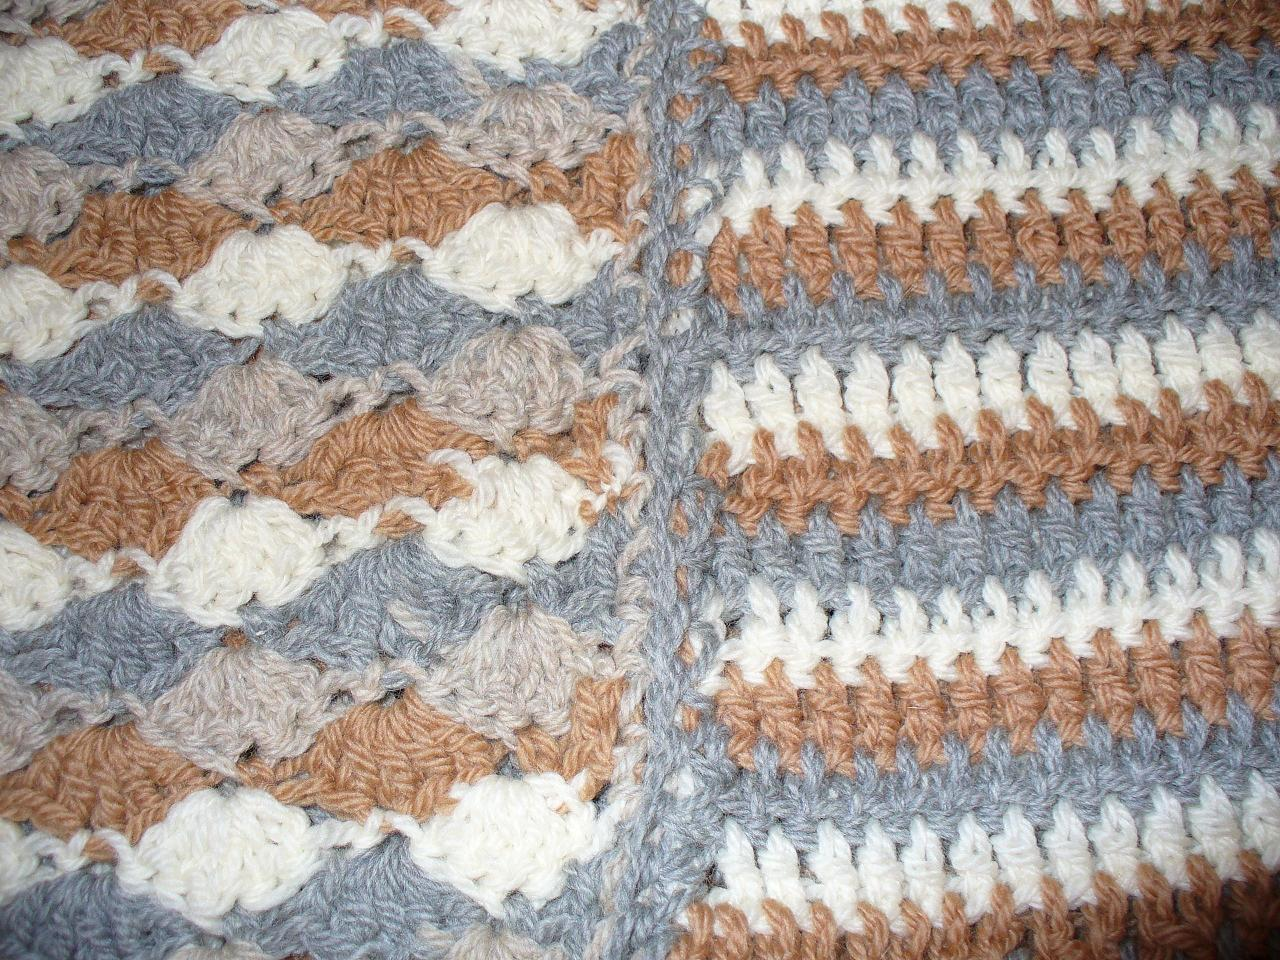 Knitting VS Crochet: My Nephews Crochet Blanket